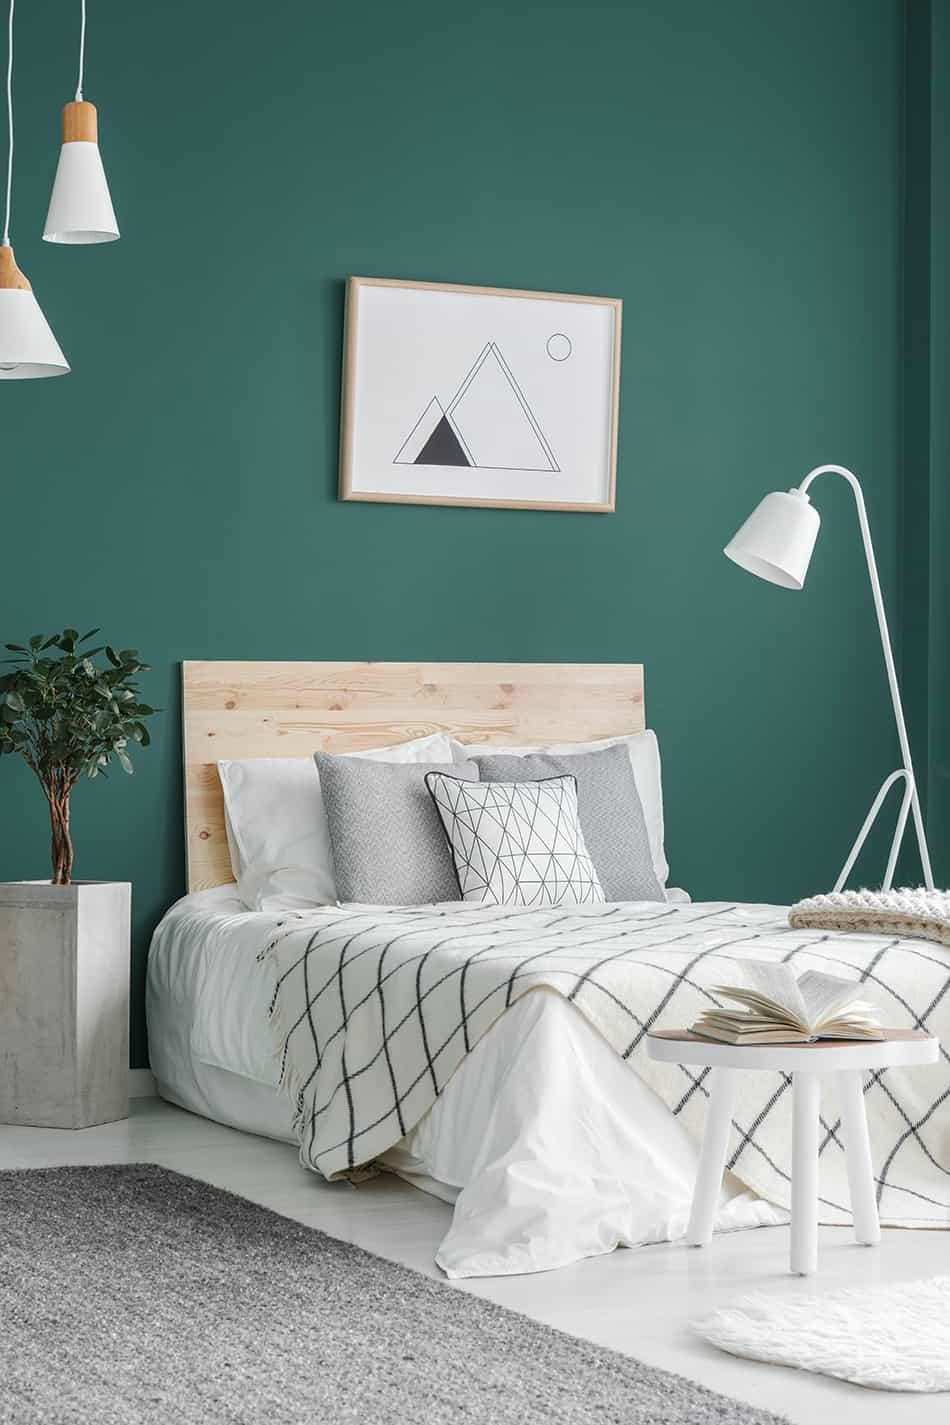 Teaming up Teal with Geometrical Patterns